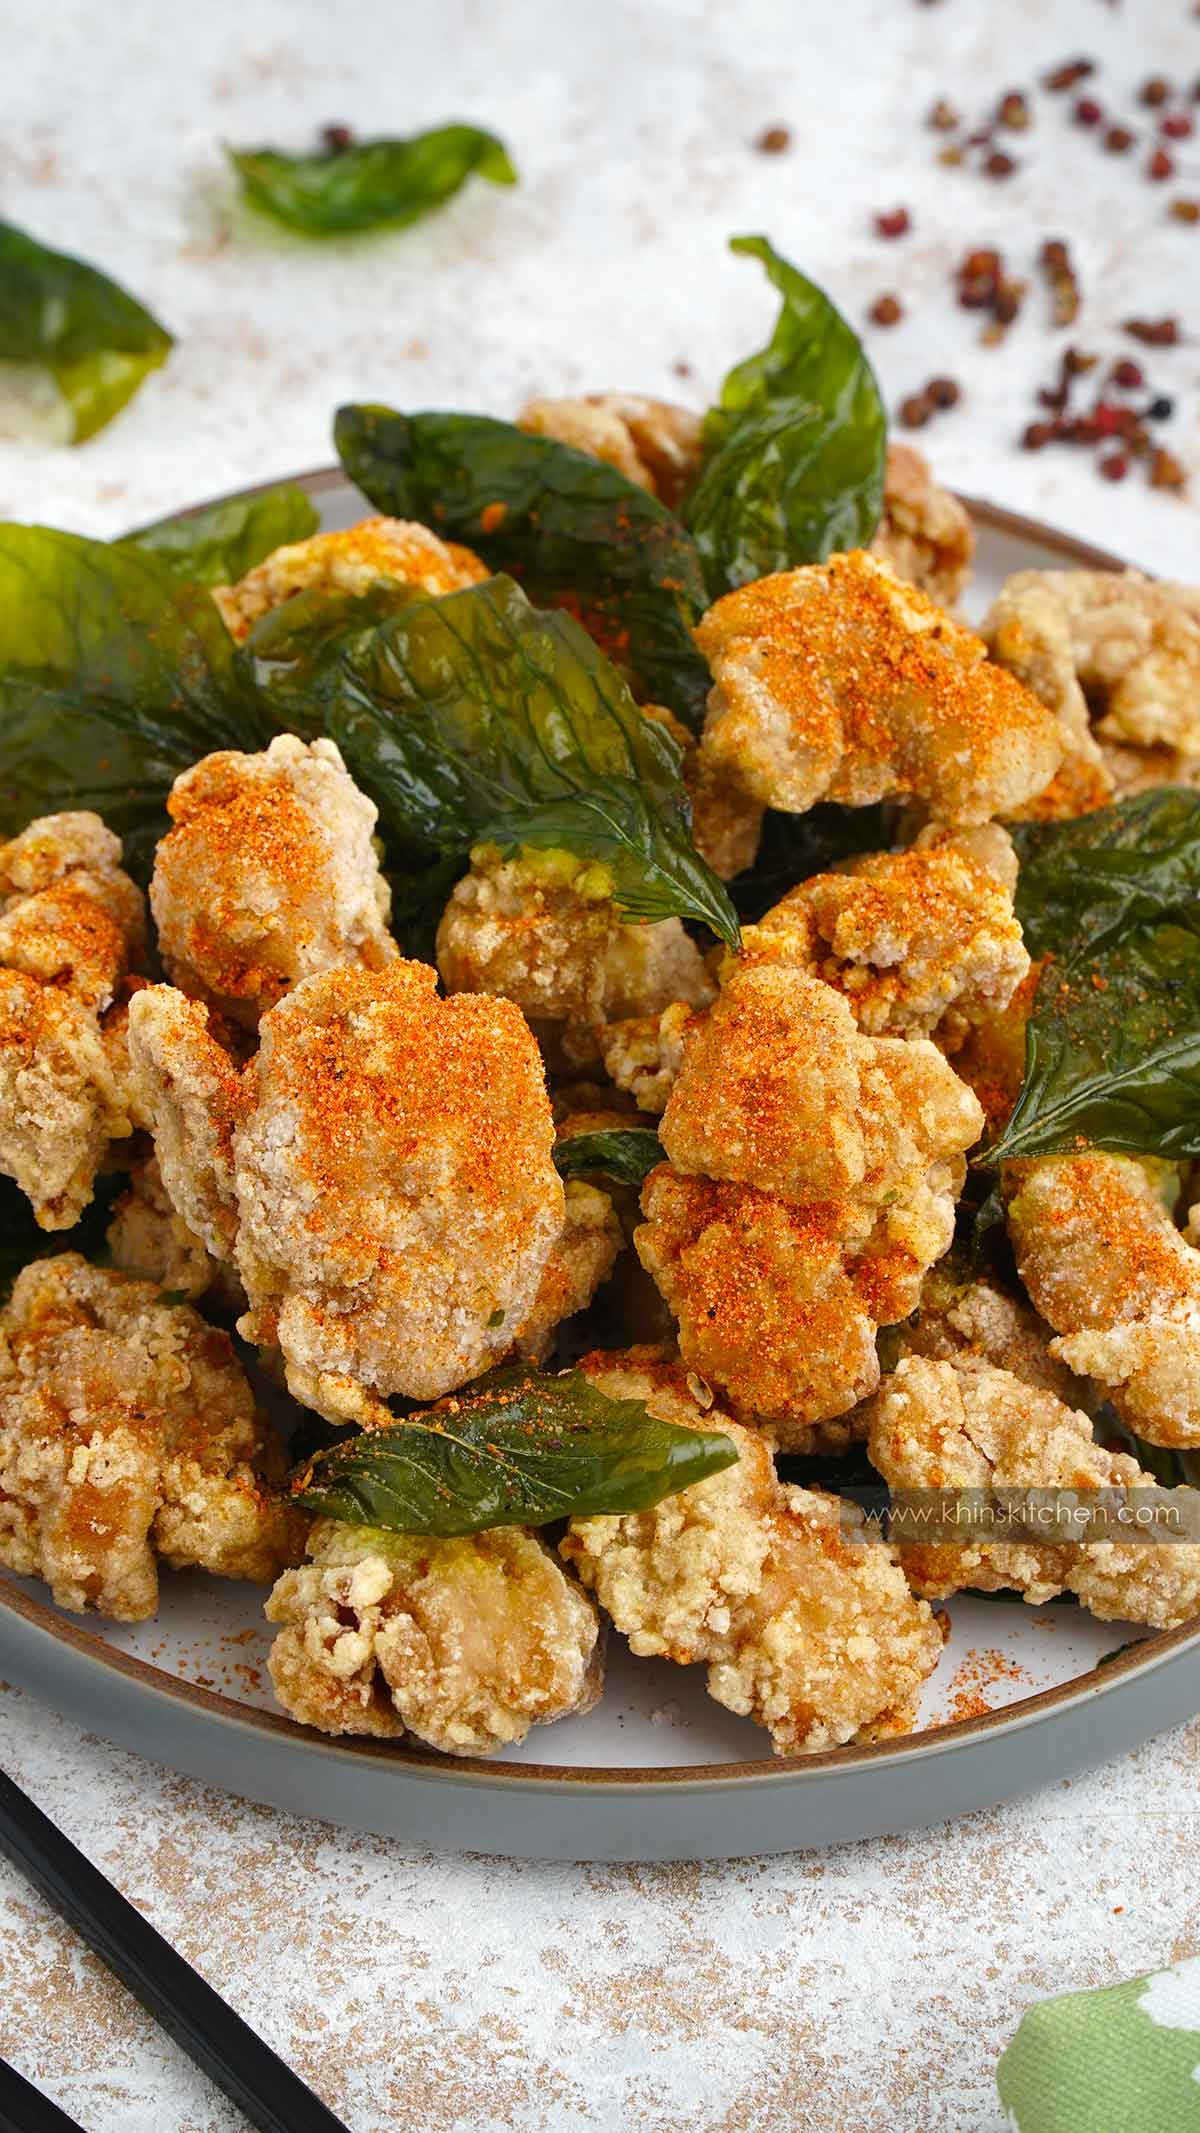 A close up shot of grey plate filled with Taiwanese fried chicken and basil leaves.